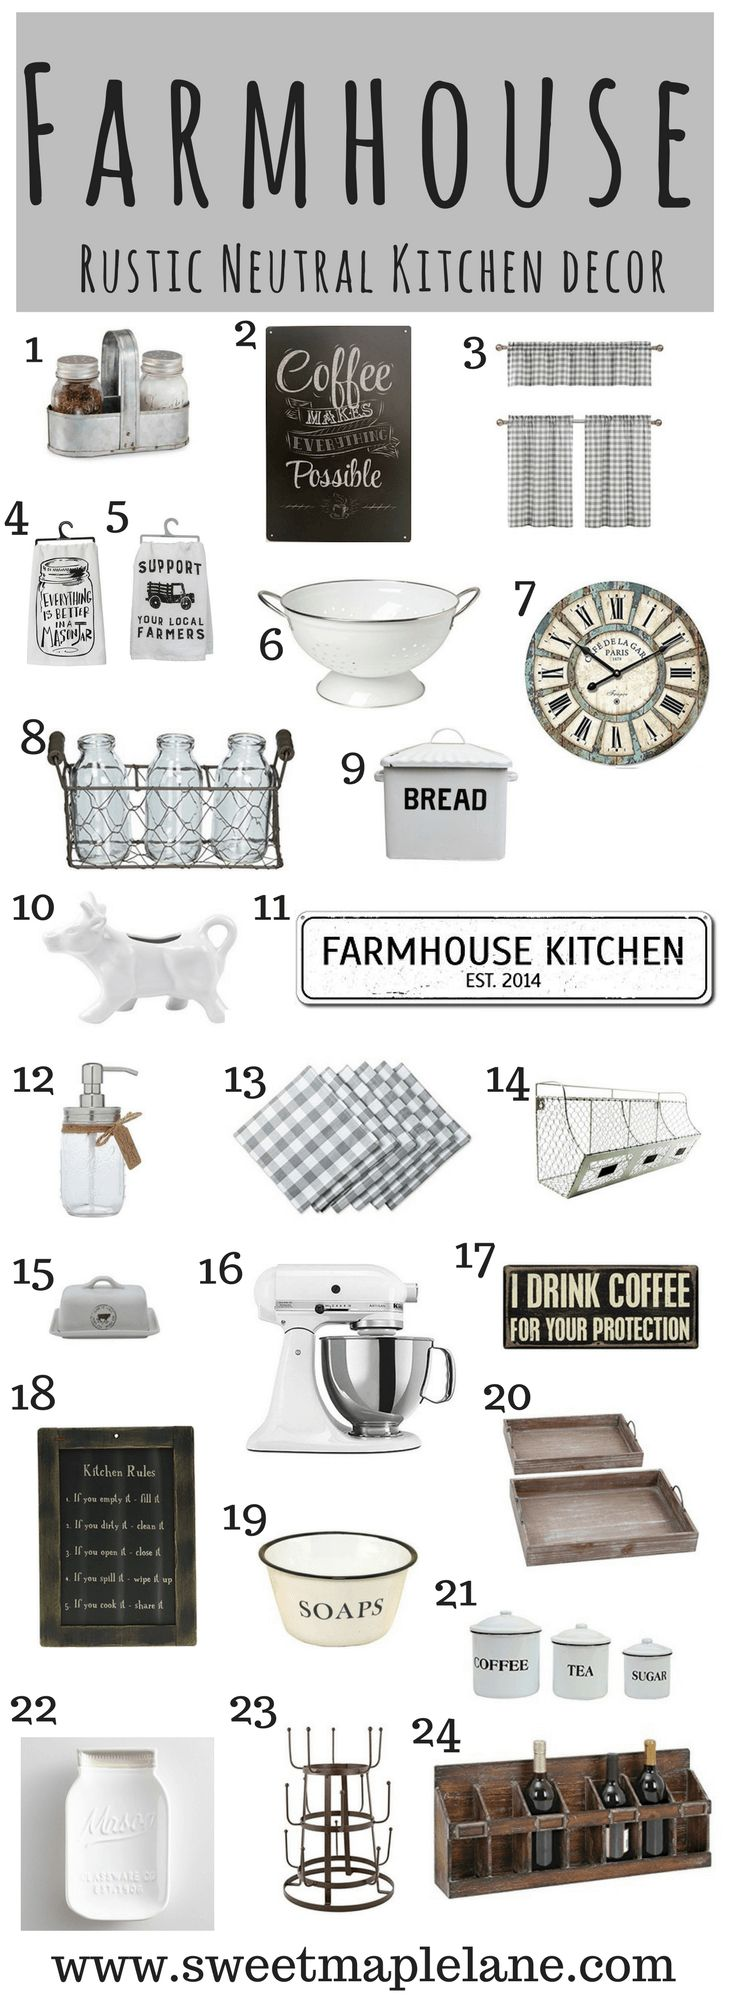 Chef Guy Kitchen Decoration 25 Best Ideas About Decorating Kitchen On Pinterest Farmhouse